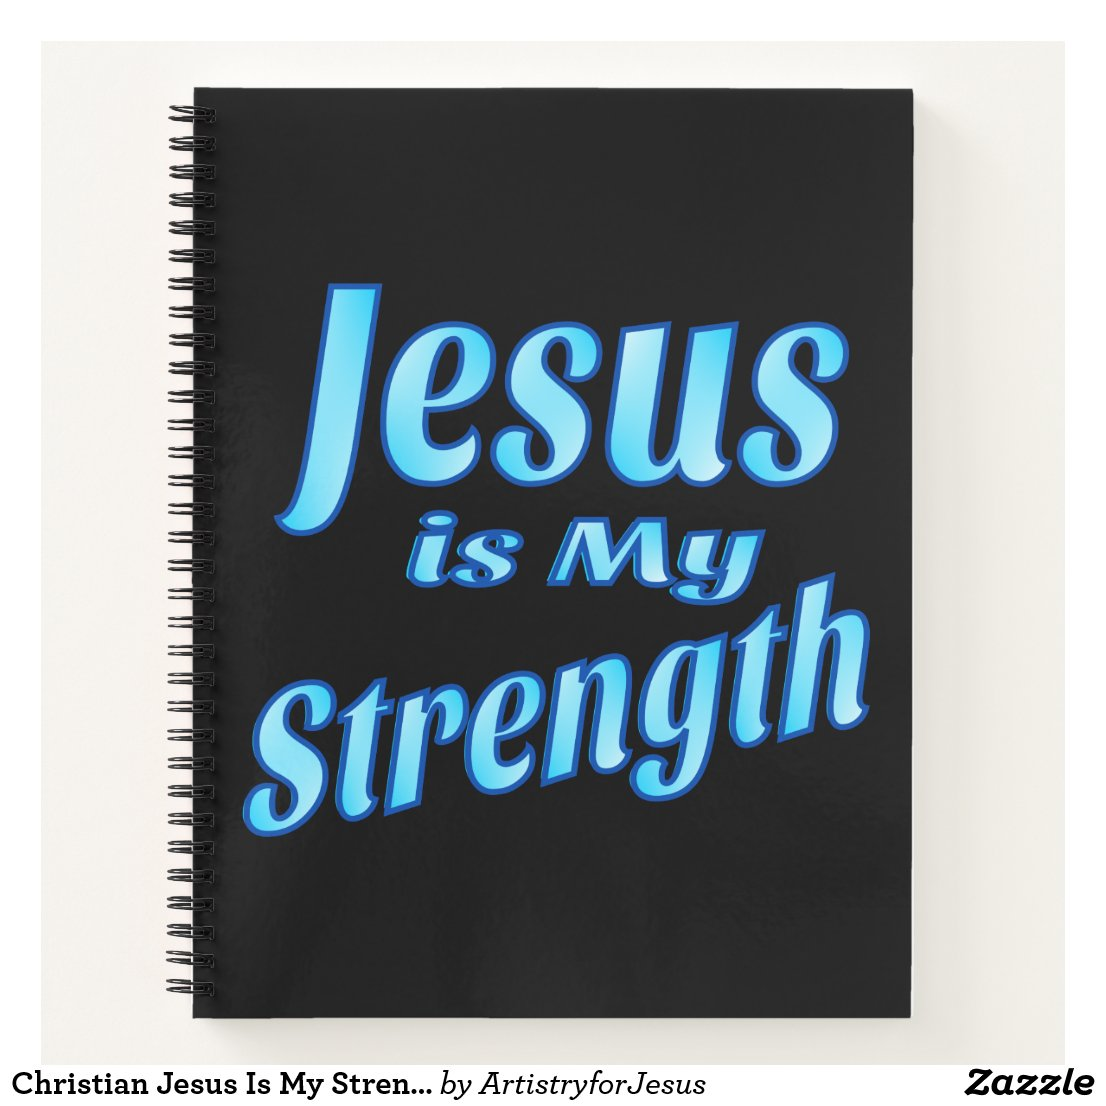 Christian Jesus Is My Strength 8.5 x 11 Notebook